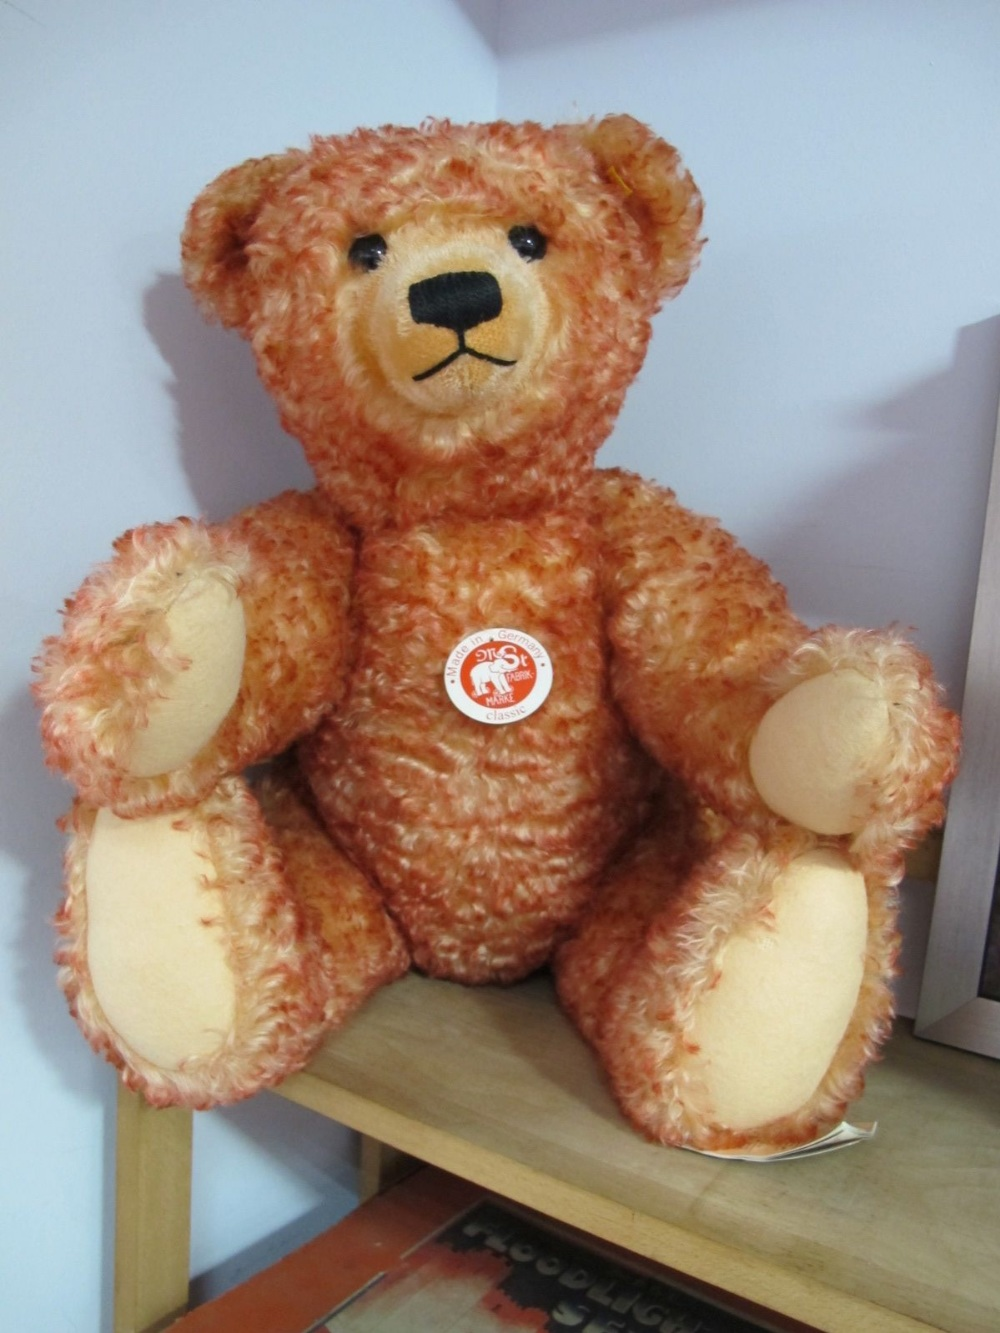 Lot 48 - A Modern Steiff Classic Teddy Bear 'Sitting Down', red, with tags, 000218. Small hole noted on the